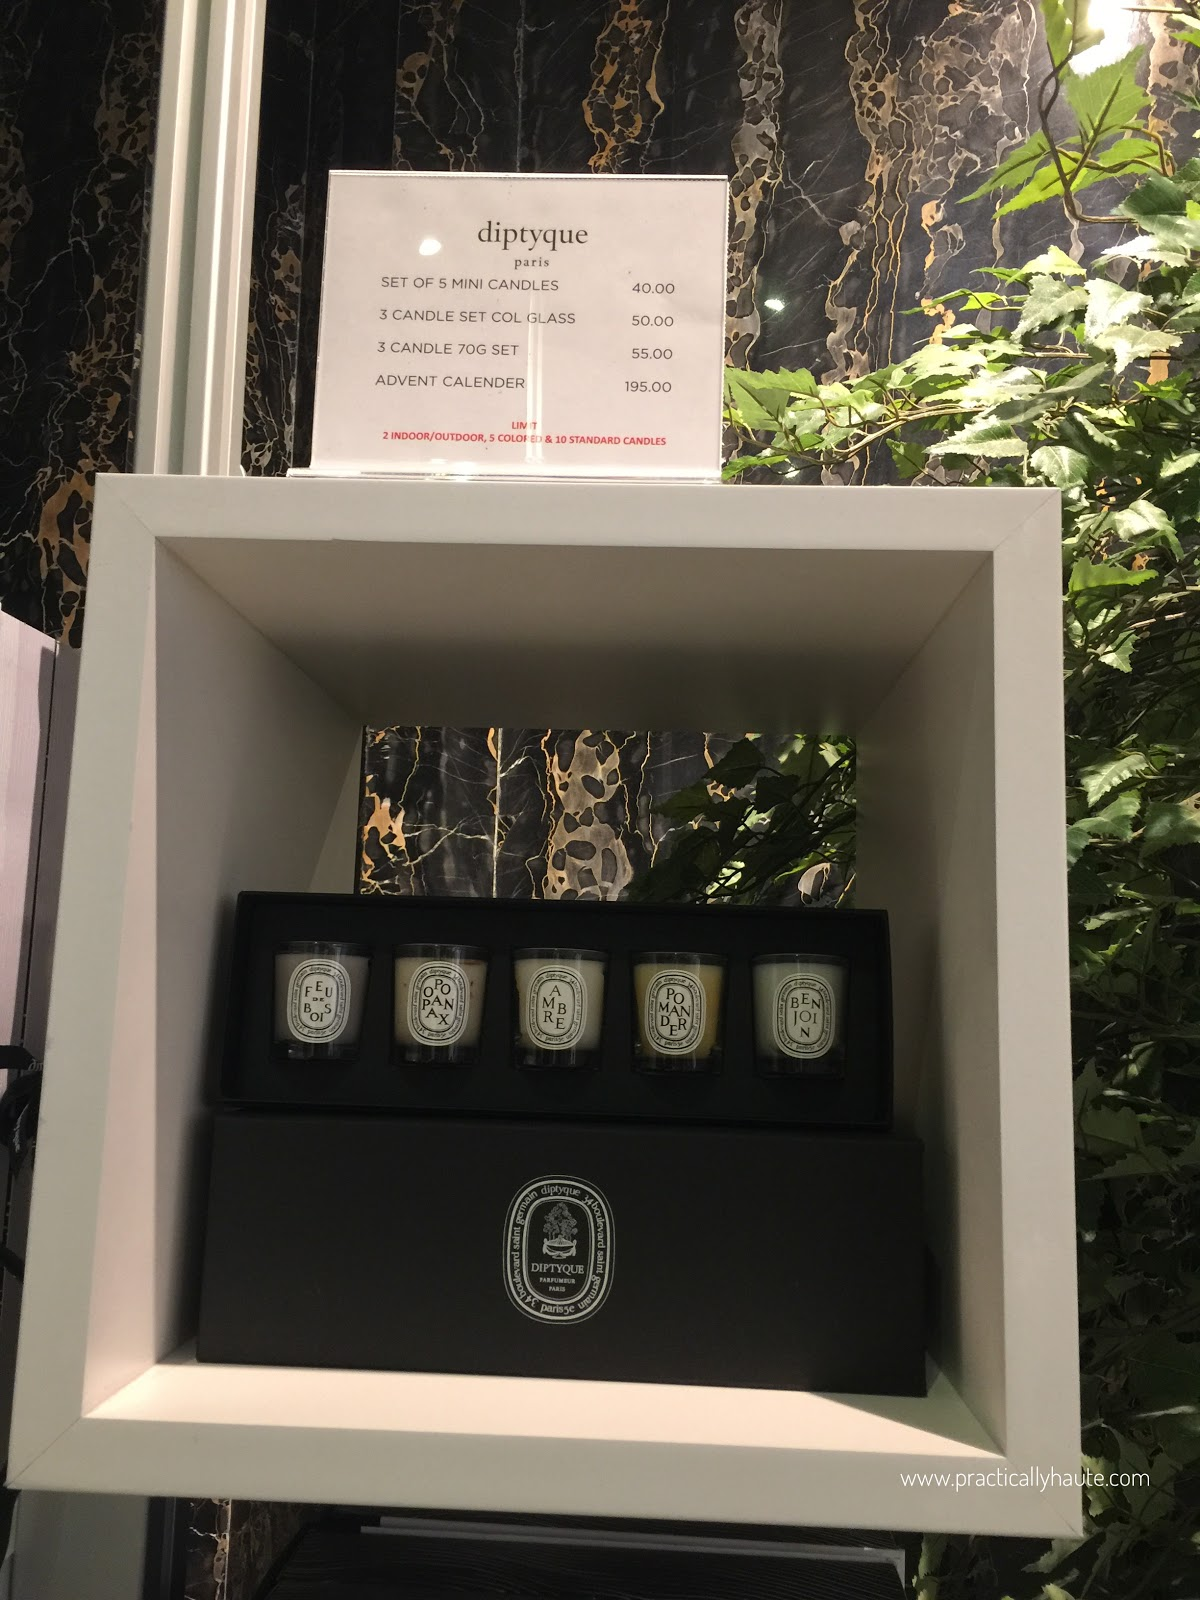 Diptyque sample sale candle set